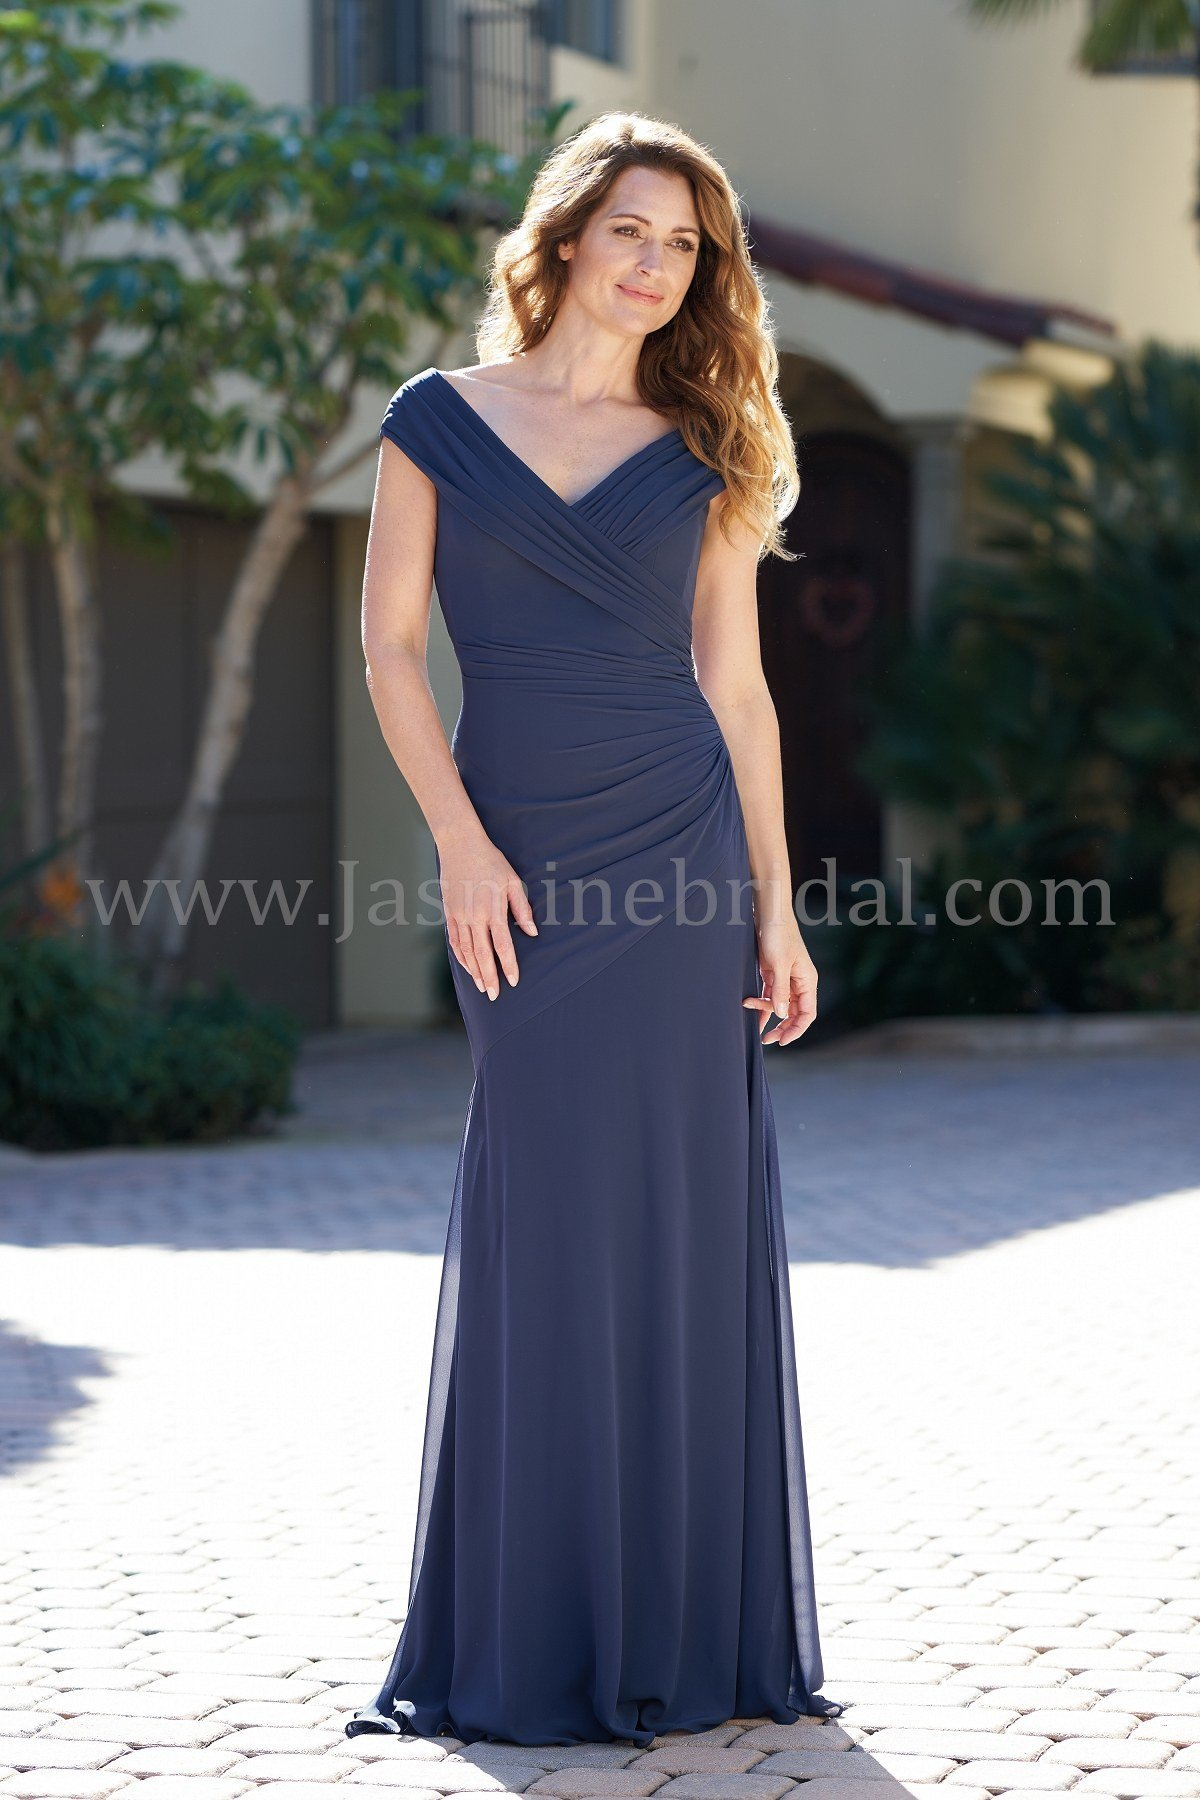 mother-of-the-bride-dresses-J205051-F